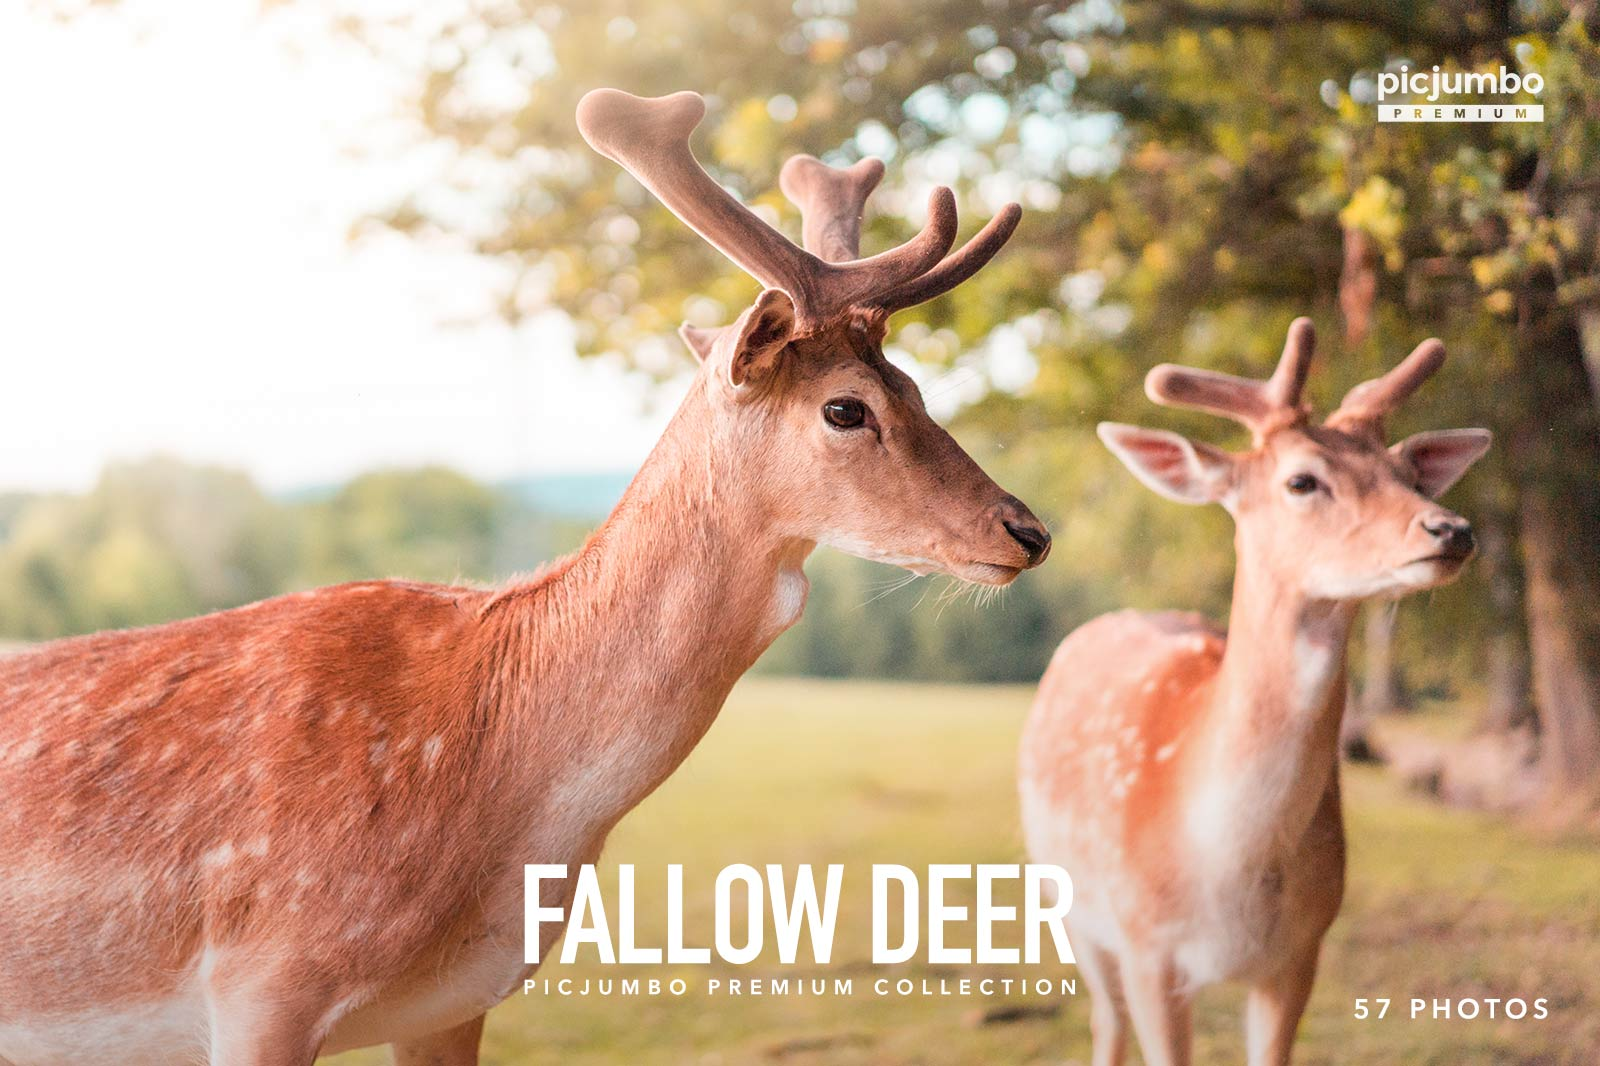 fallow-deer-picjumbo-premium-collection.